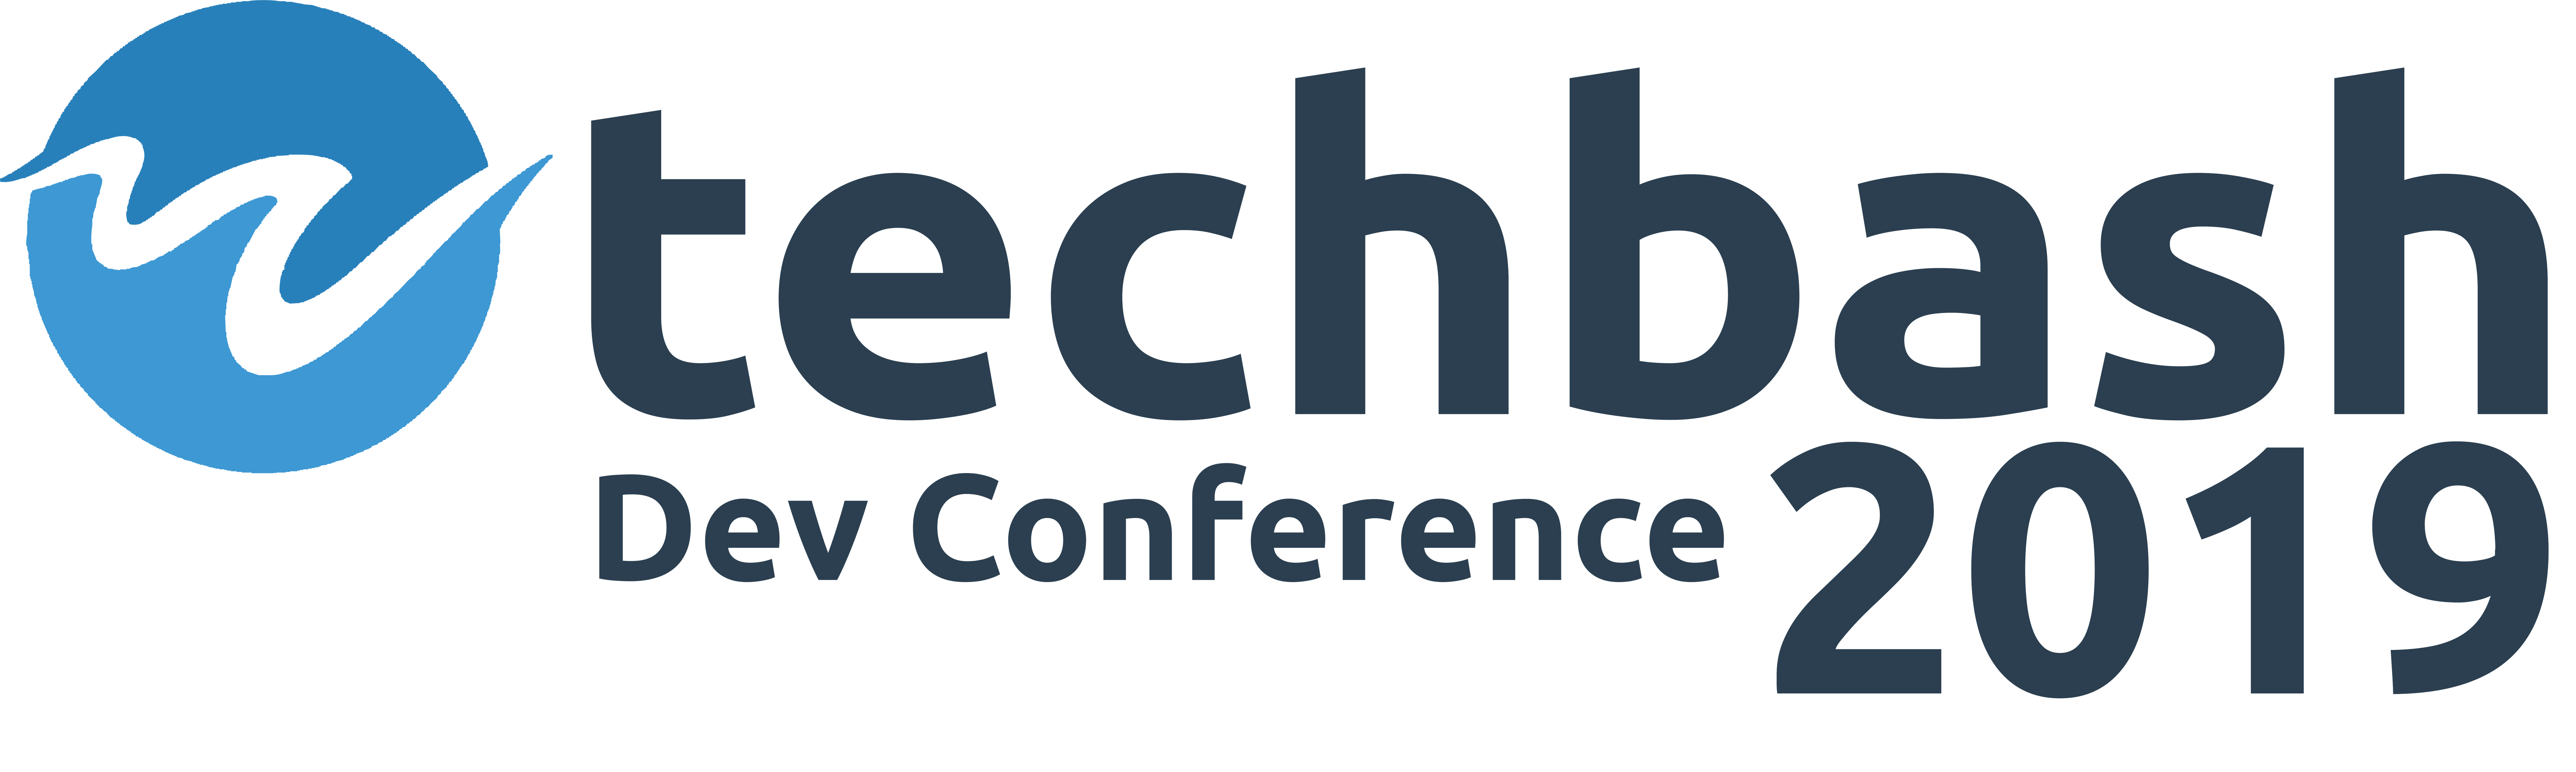 https://cdn.jasongaylord.com/images/techbash/2019/techbash2019devconf.png